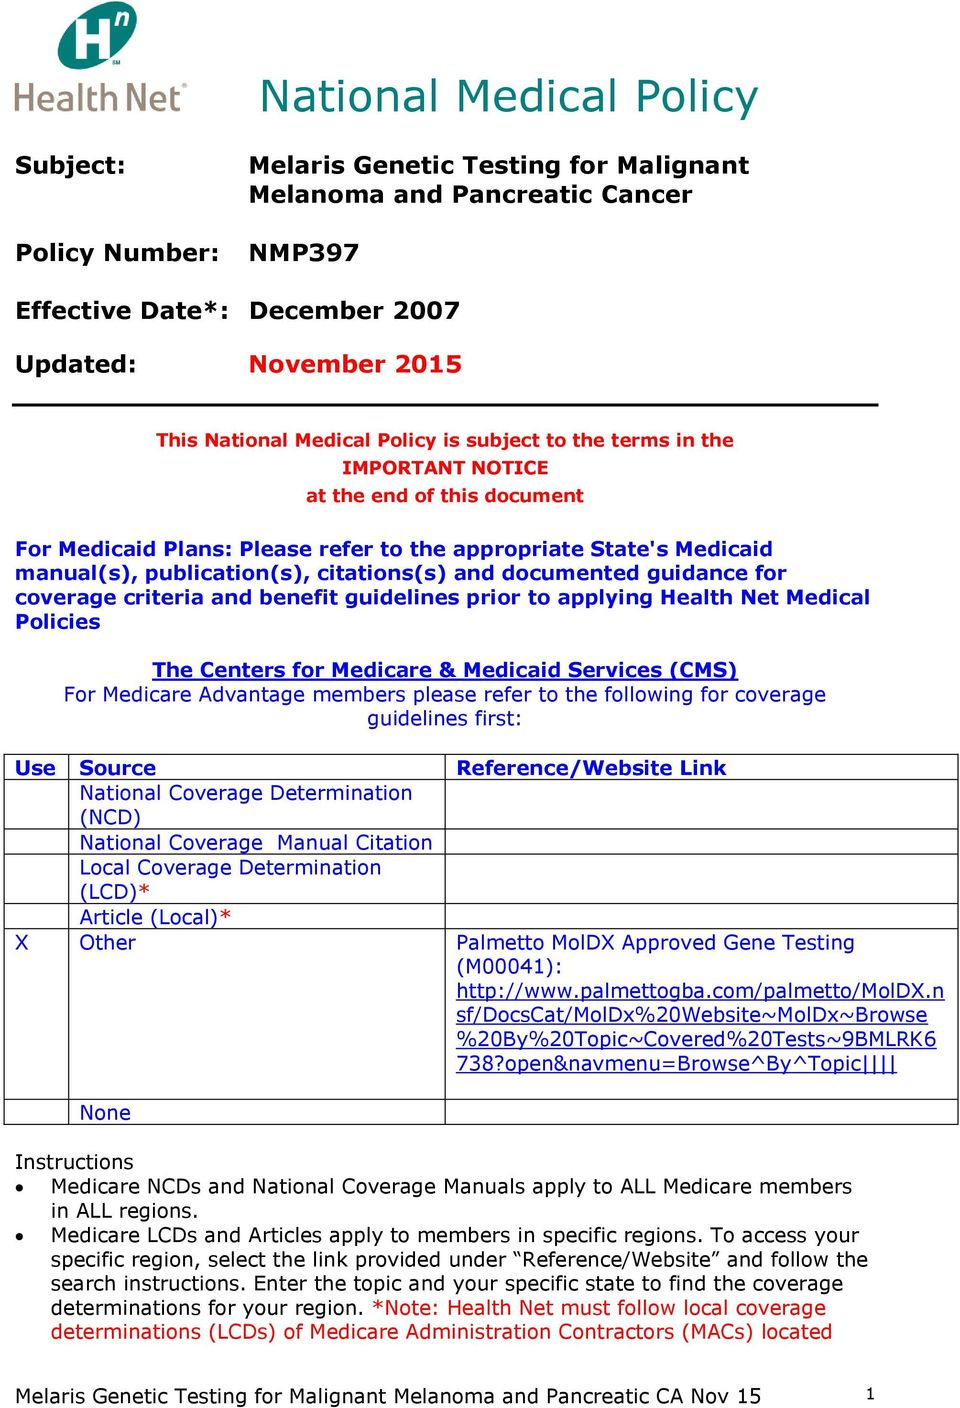 National Medical Policy - PDF